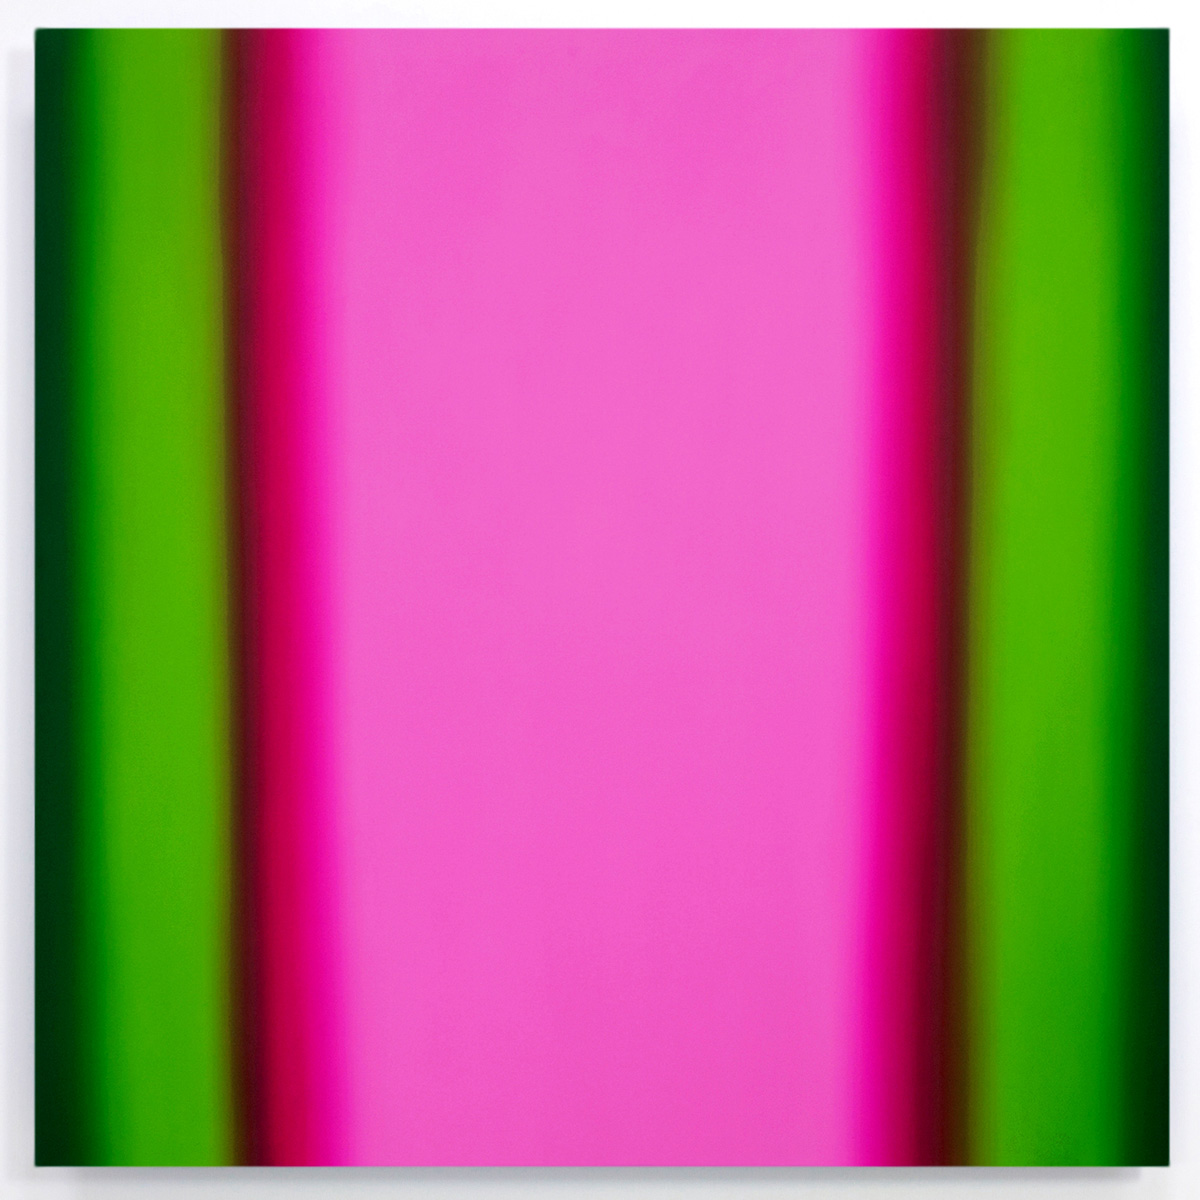 Inevitability of Truth 9-S6060 Square (Red Green/Magenta Light), 2015, oil on canvas on custom beveled stretcher, 60 x 60 in. (153 x 153 cm.)